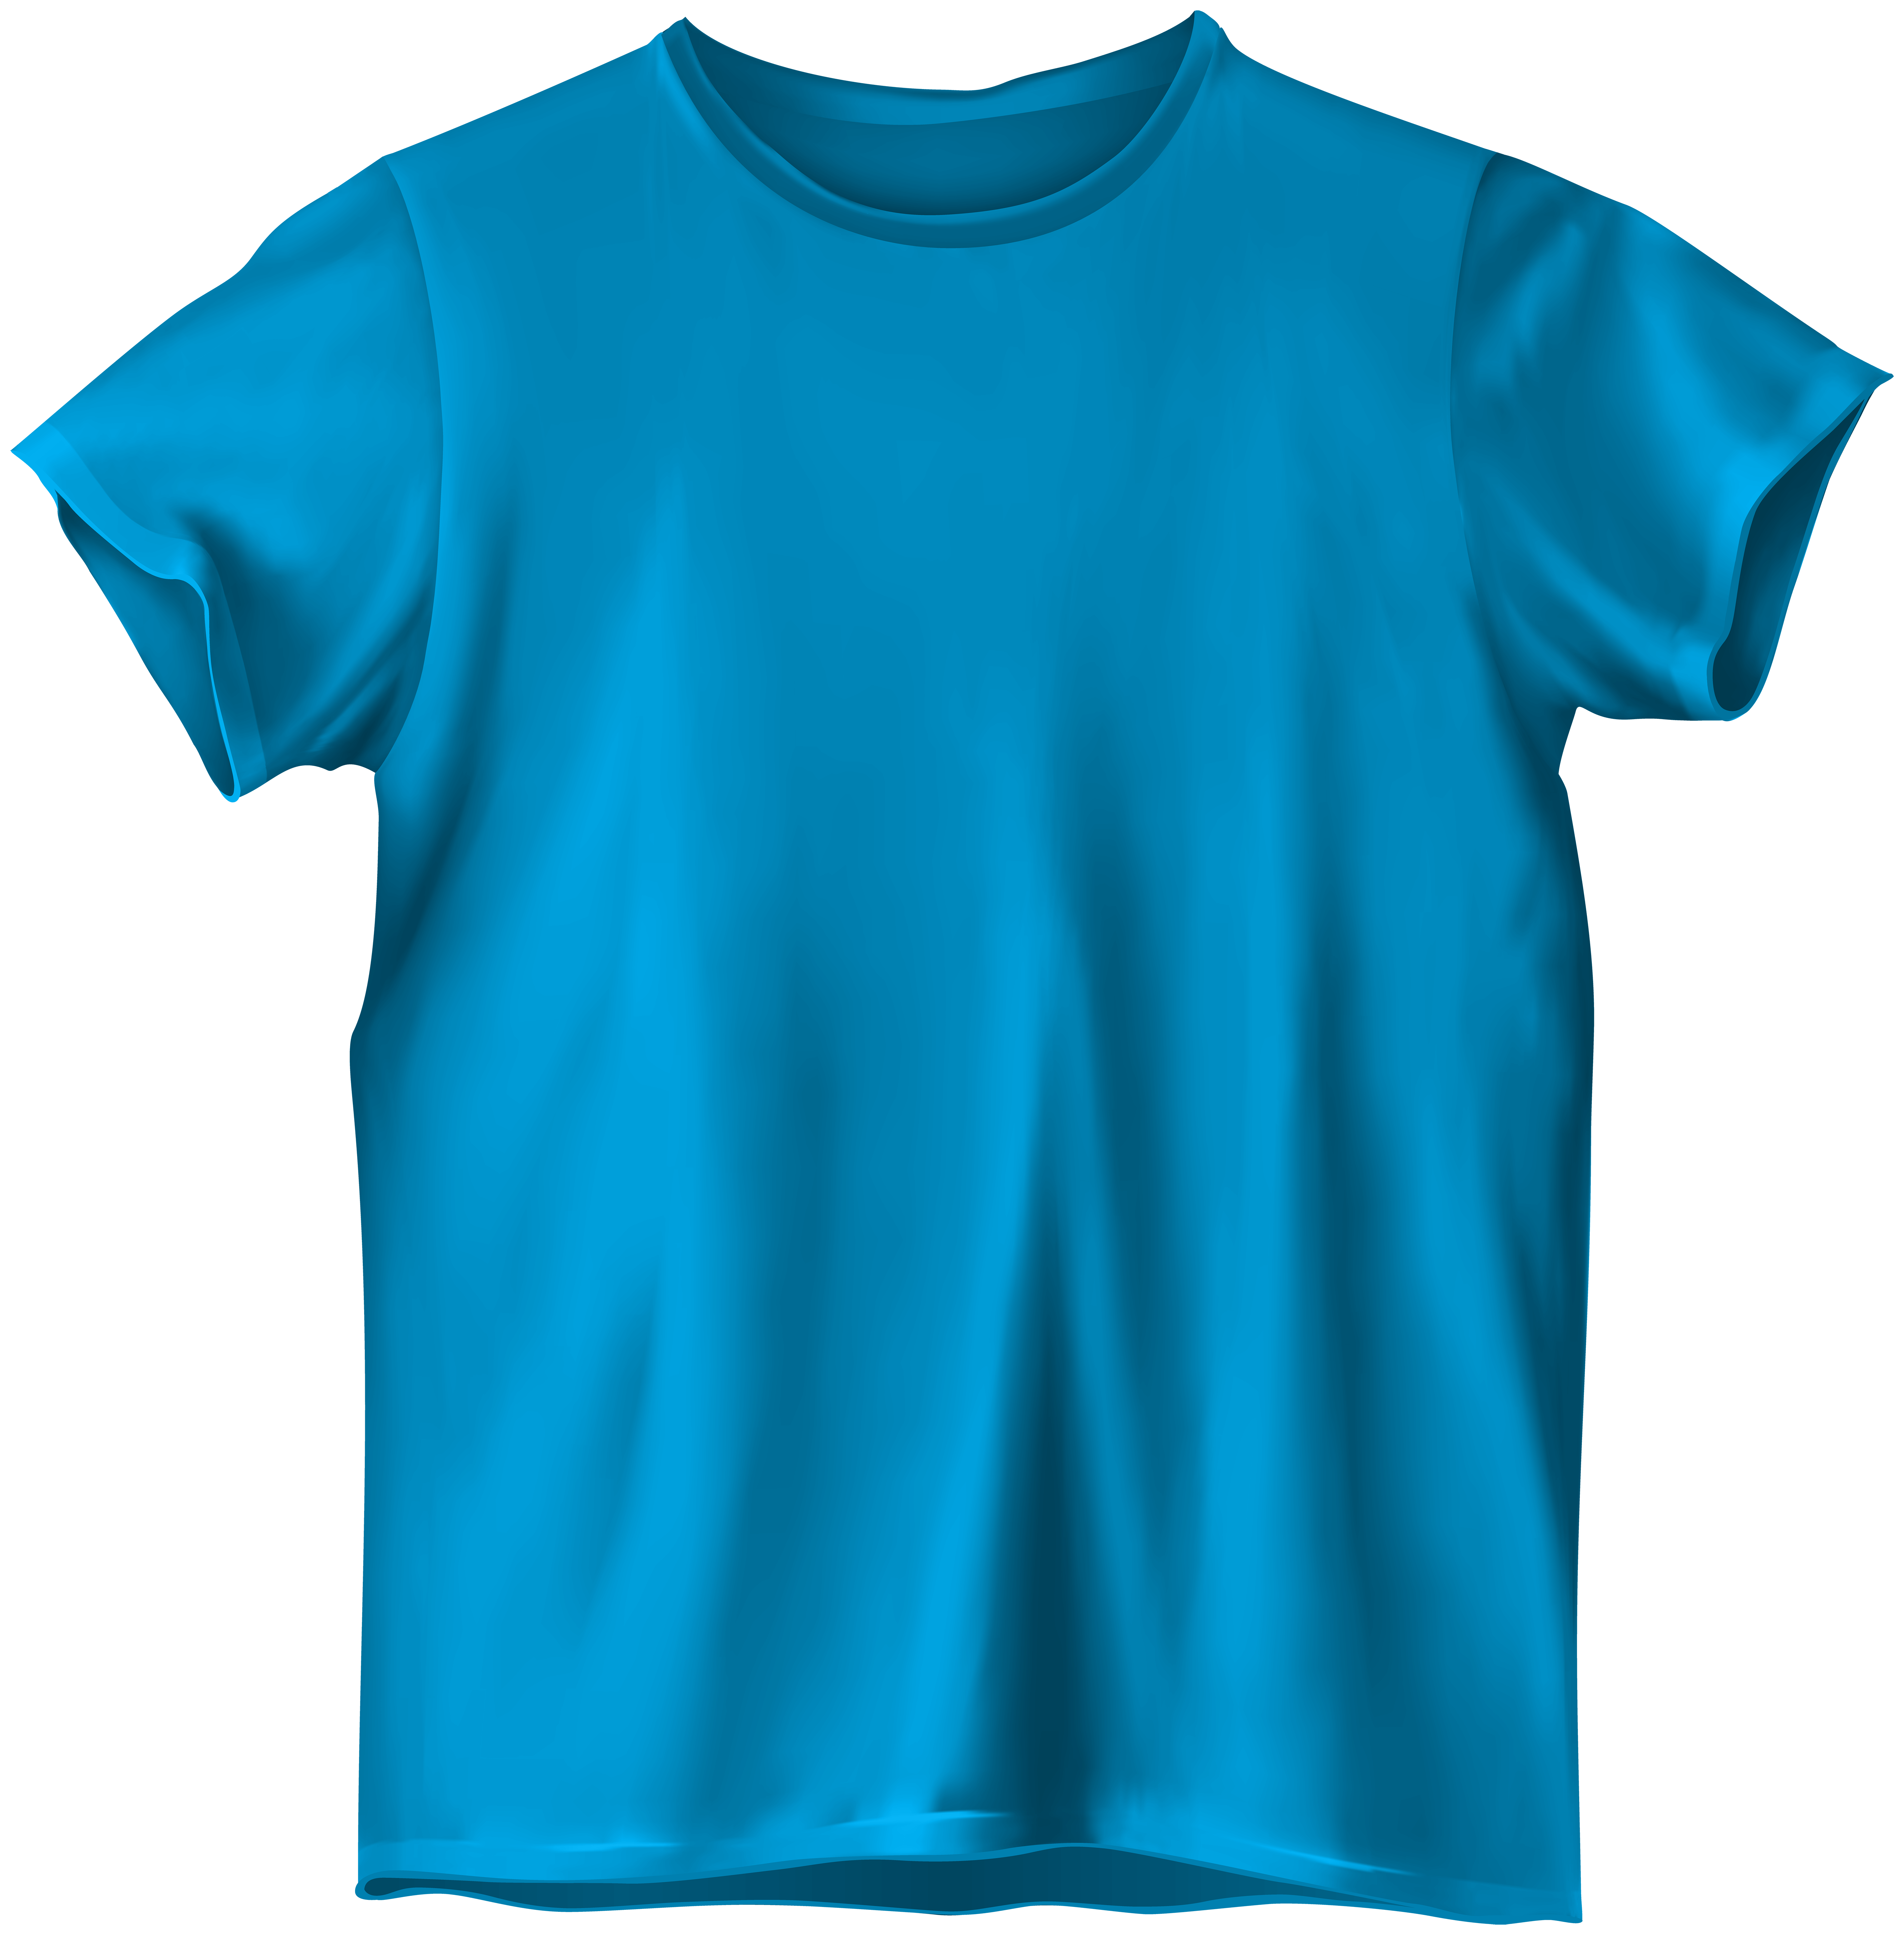 Blue t png best. Shirt clipart svg library